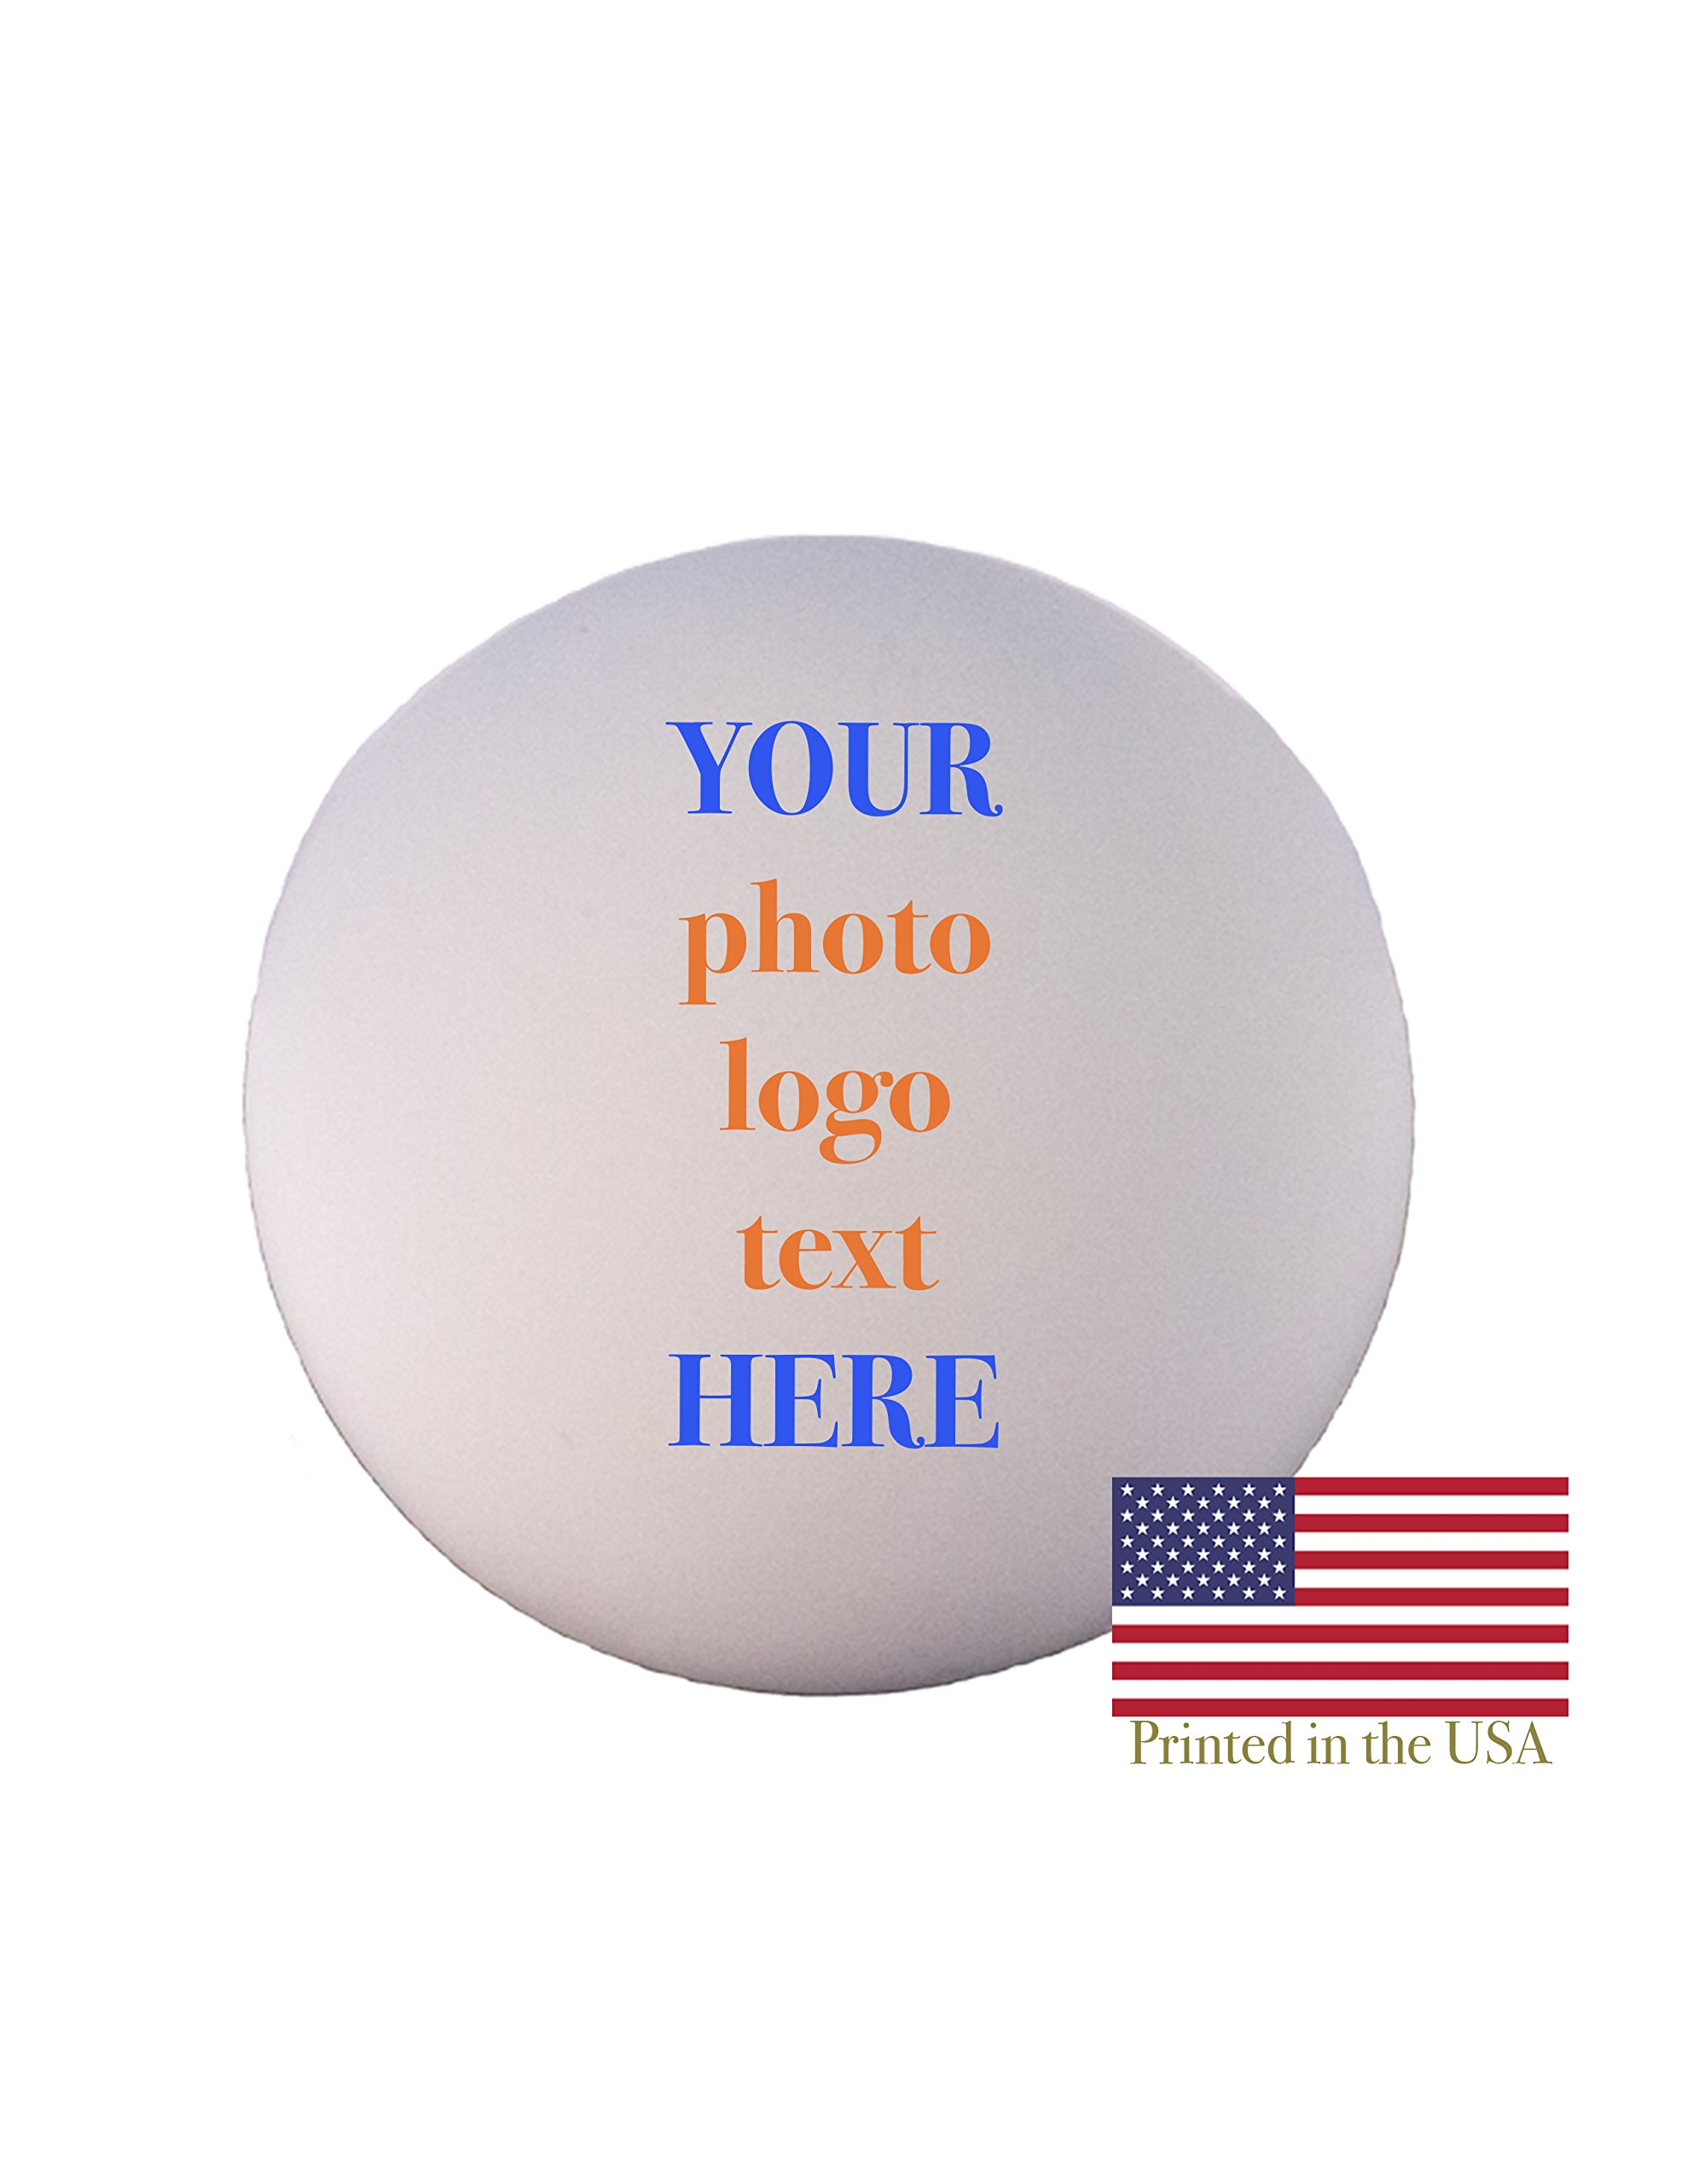 Custom Personalized Lacrosse Ball - Ships Next Day, High Resolution Photos, Logos & Text on Lacrosse Balls - for Players, Trophies, MVP Awards, Coaches, Personalized Gifts